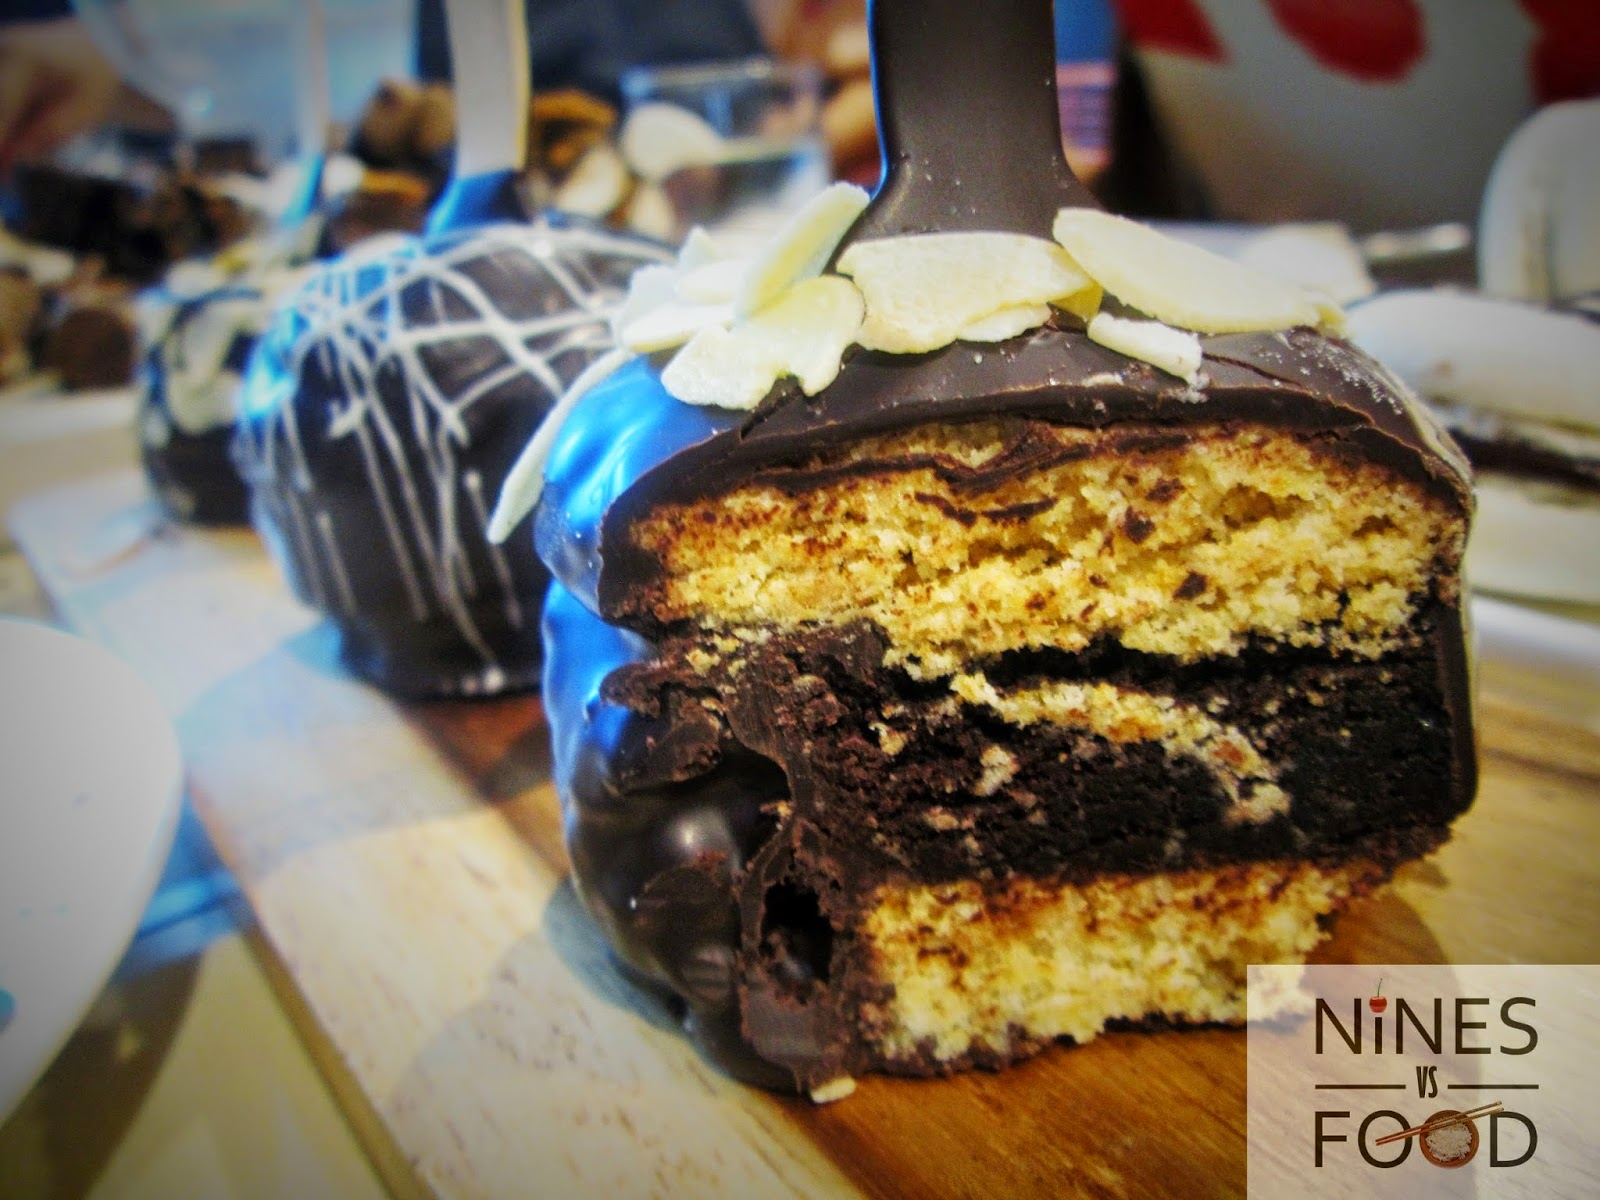 Nines vs. Food - Wicked by Cravings Shangri-la-13.jpg